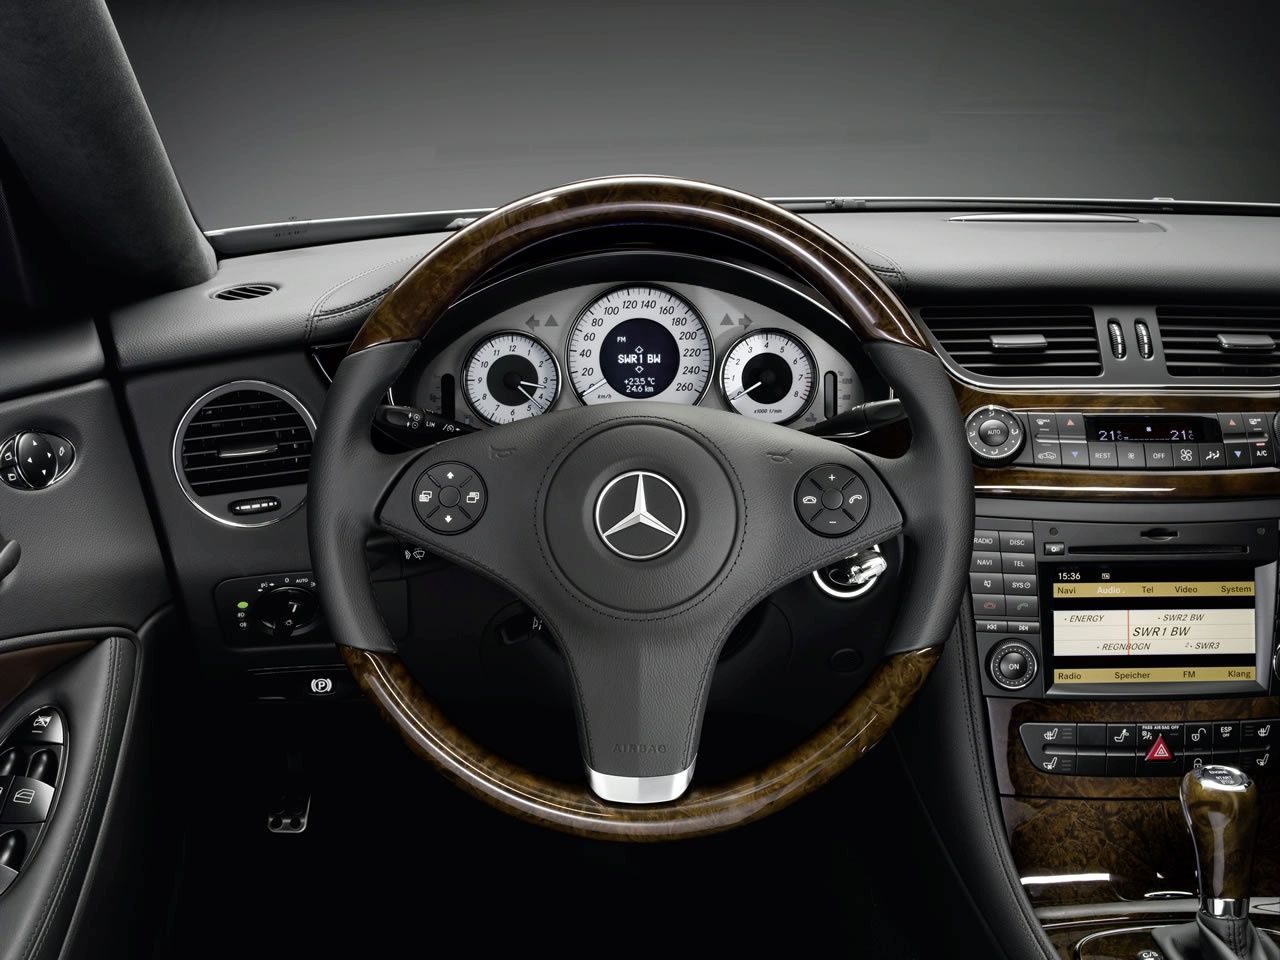 Mercedes Benz Cls W219 Wood Interior Luxury Car Interior